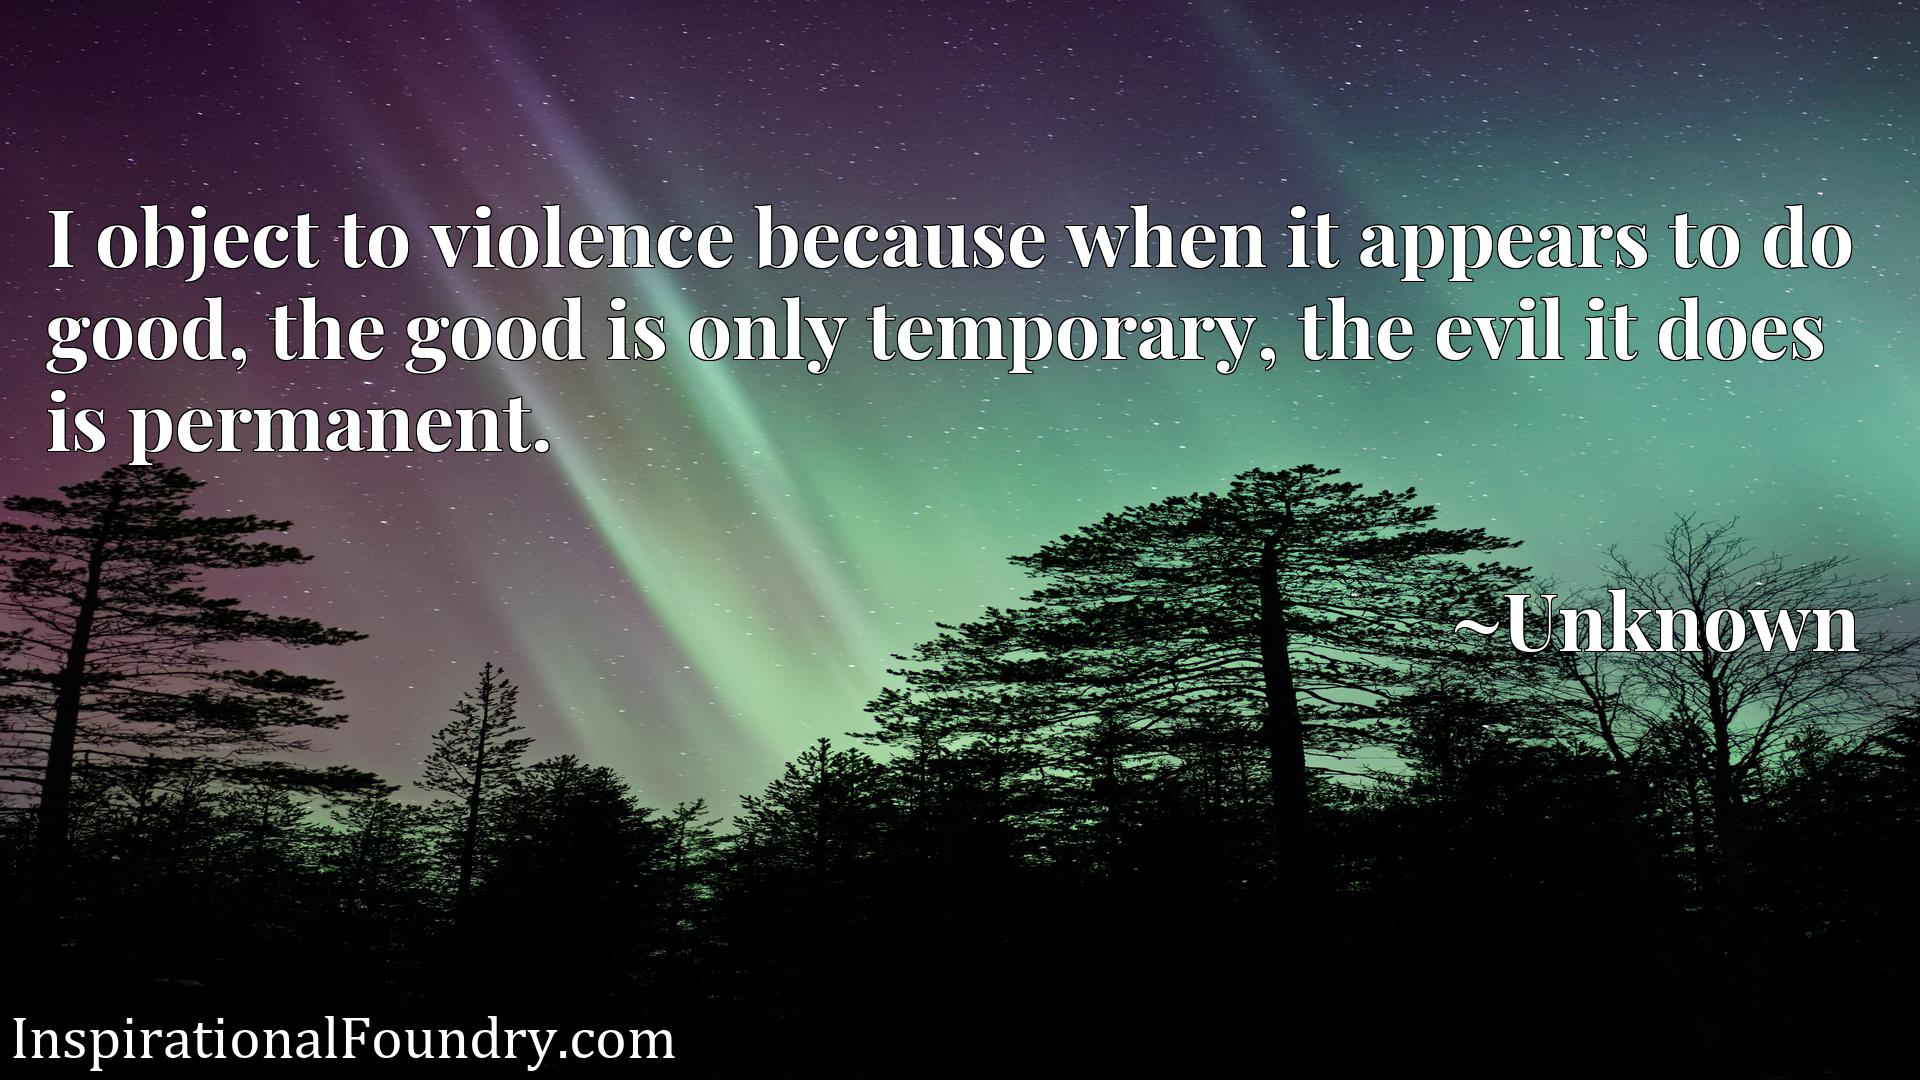 Quote Picture :I object to violence because when it appears to do good, the good is only temporary, the evil it does is permanent.